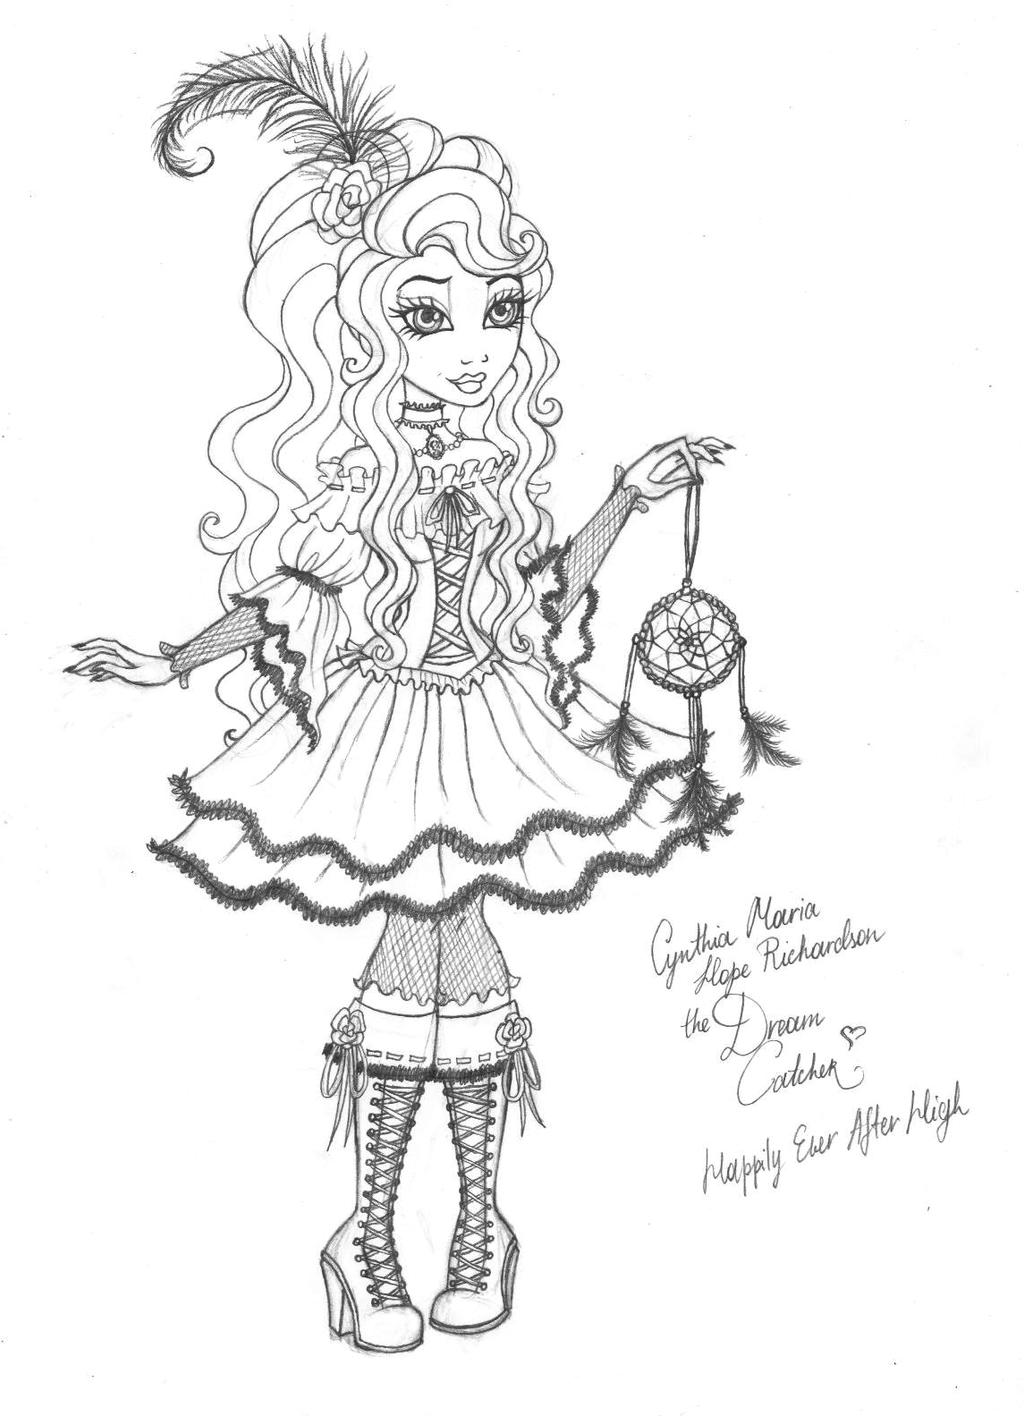 Cynthia Happily Ever After High By Cindy Brilliant